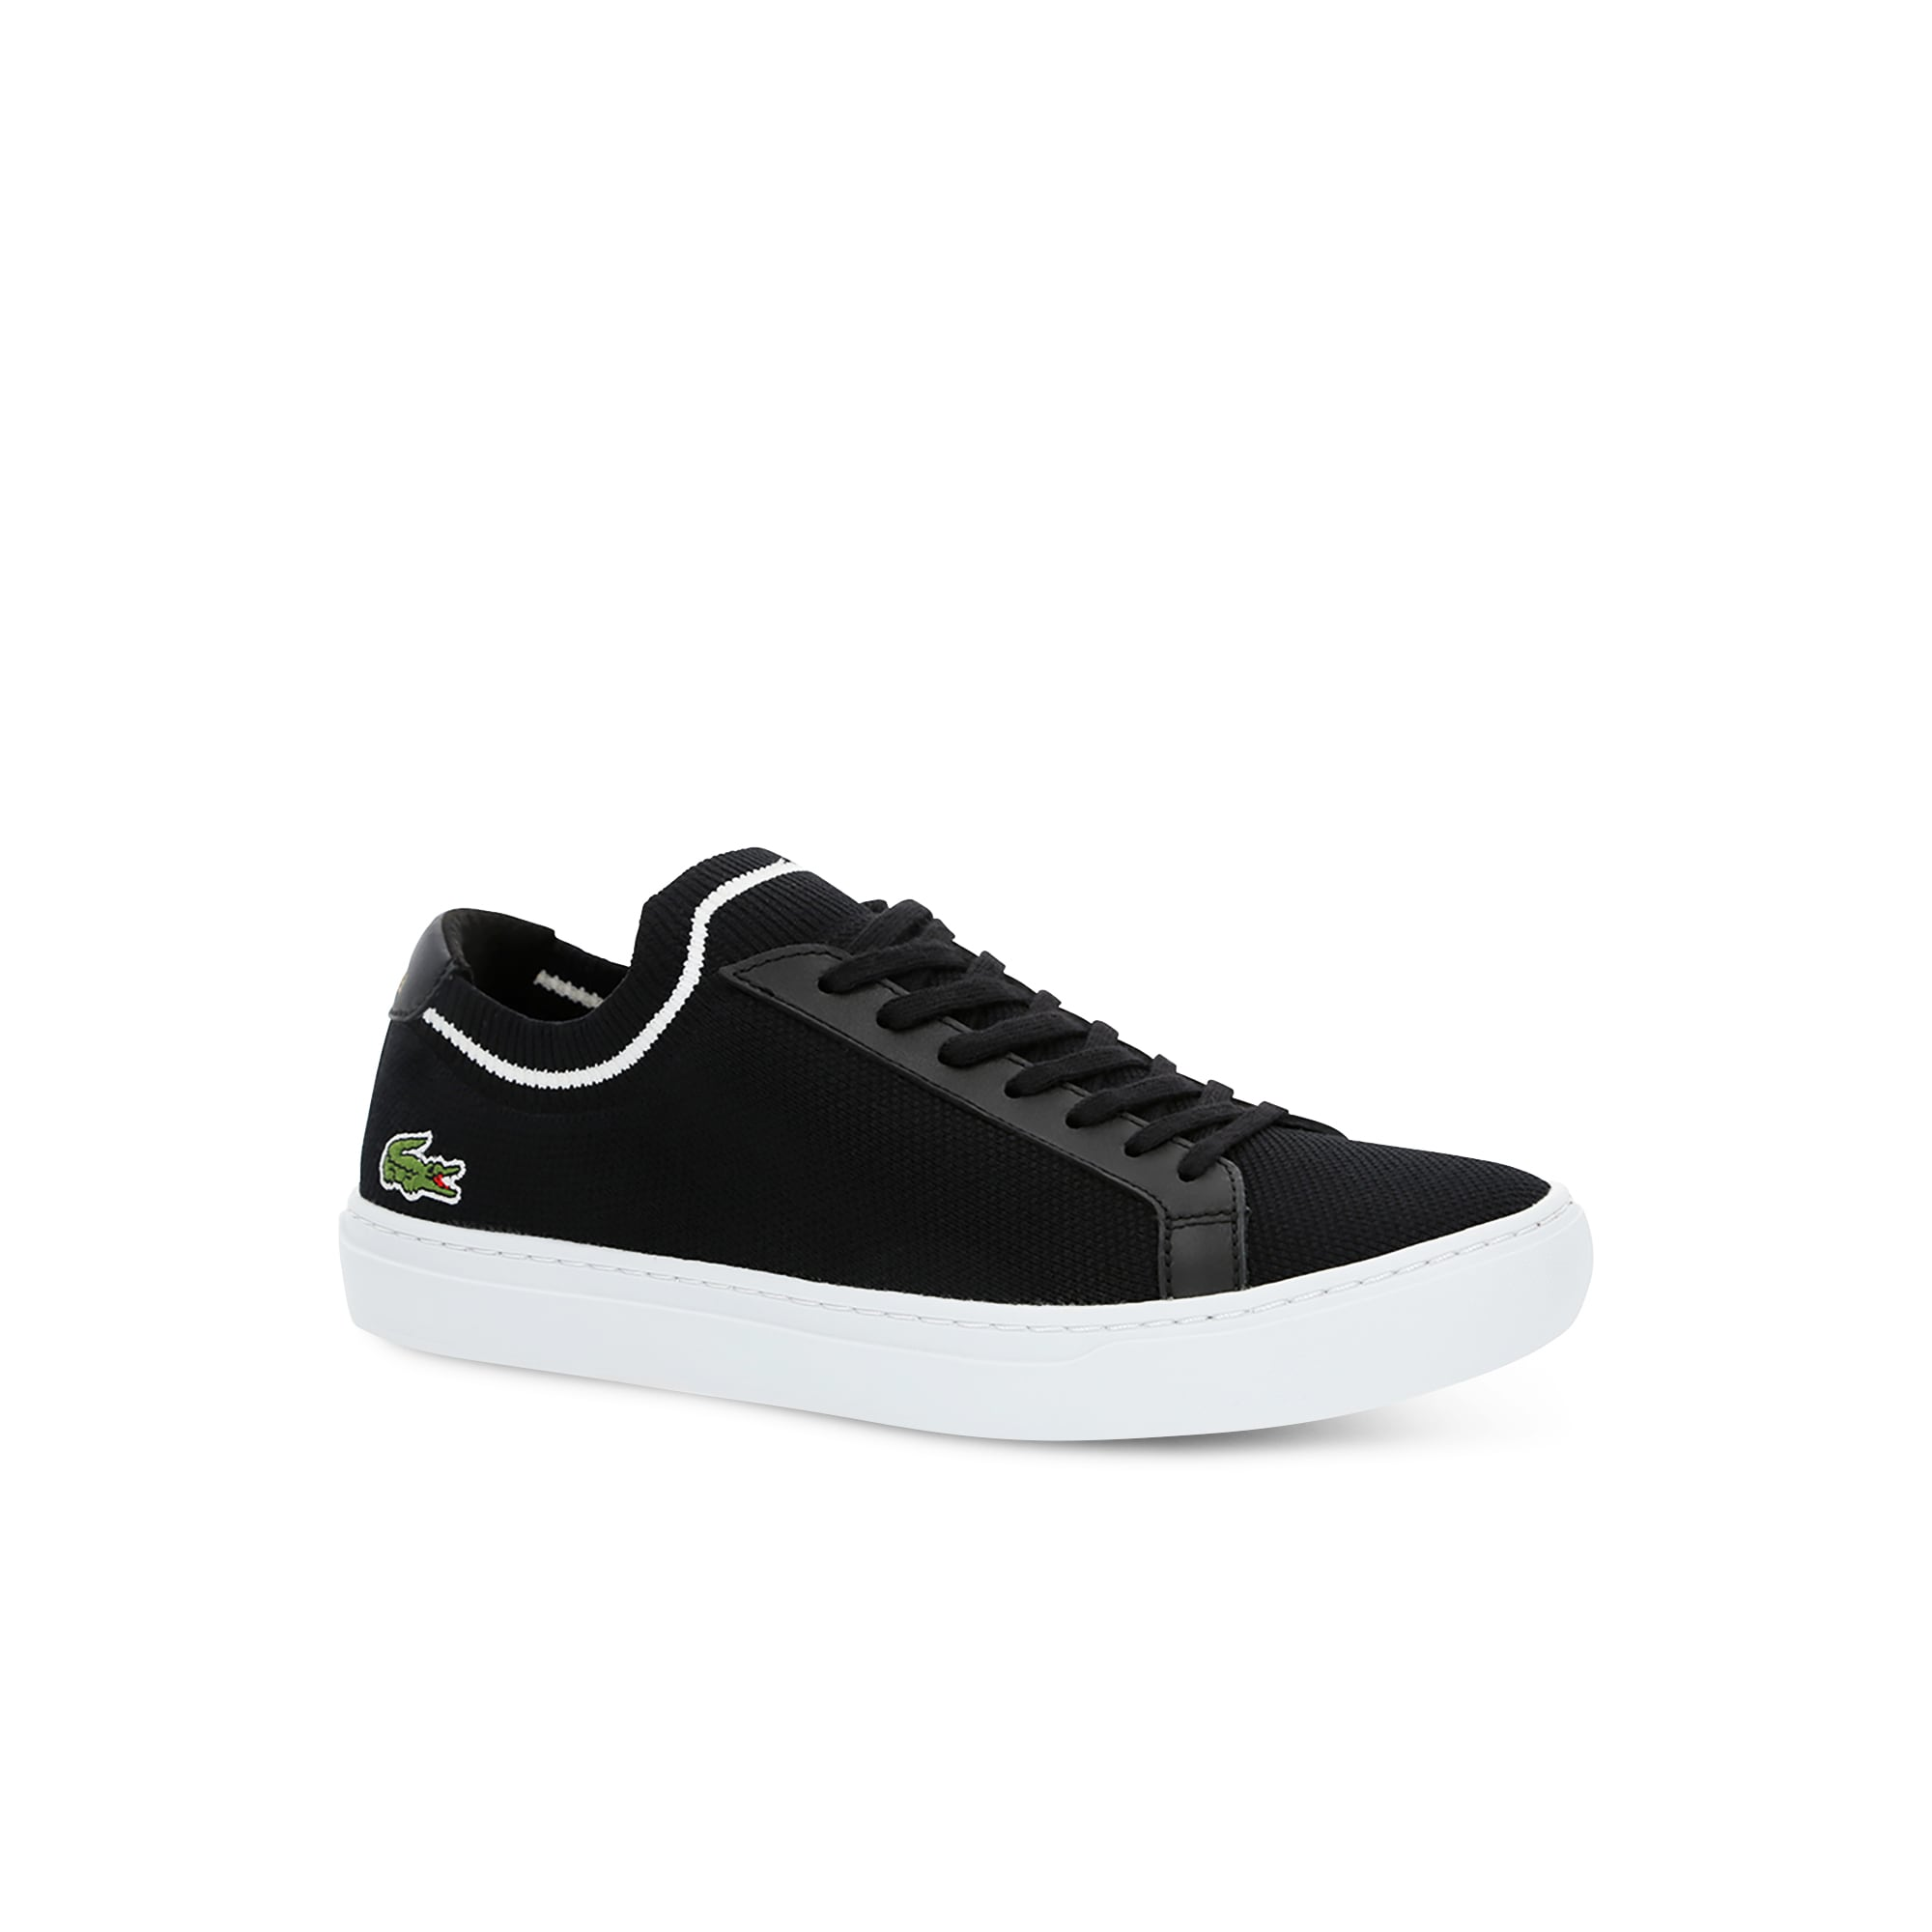 030da052874c Men s La Piquée Textile Trainers. £95.00. + 3 colors